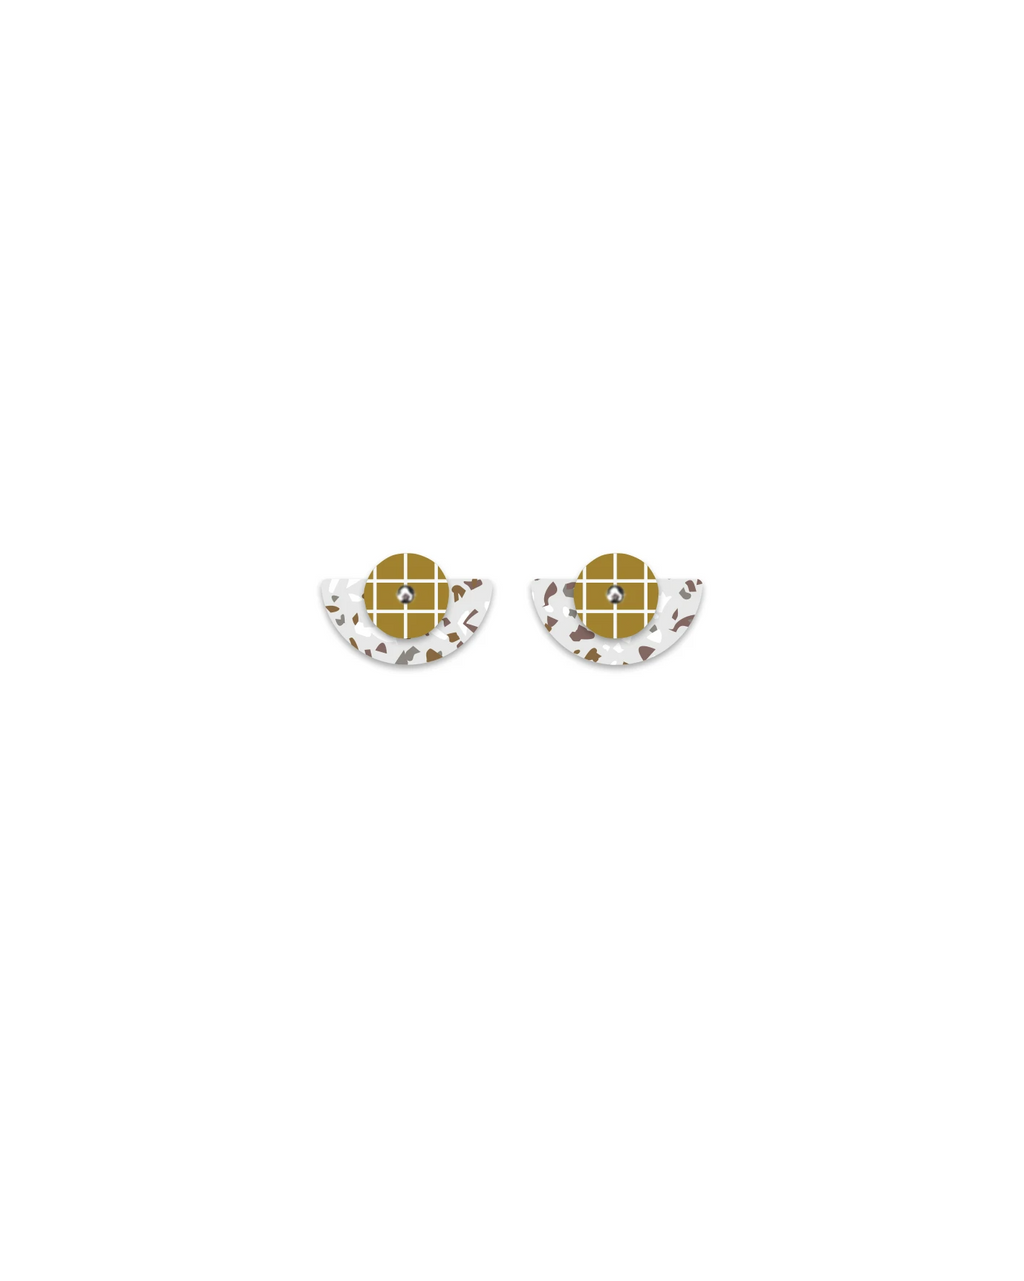 Layered Small Moon Studs | Neutral Tones Terrazzo Grid